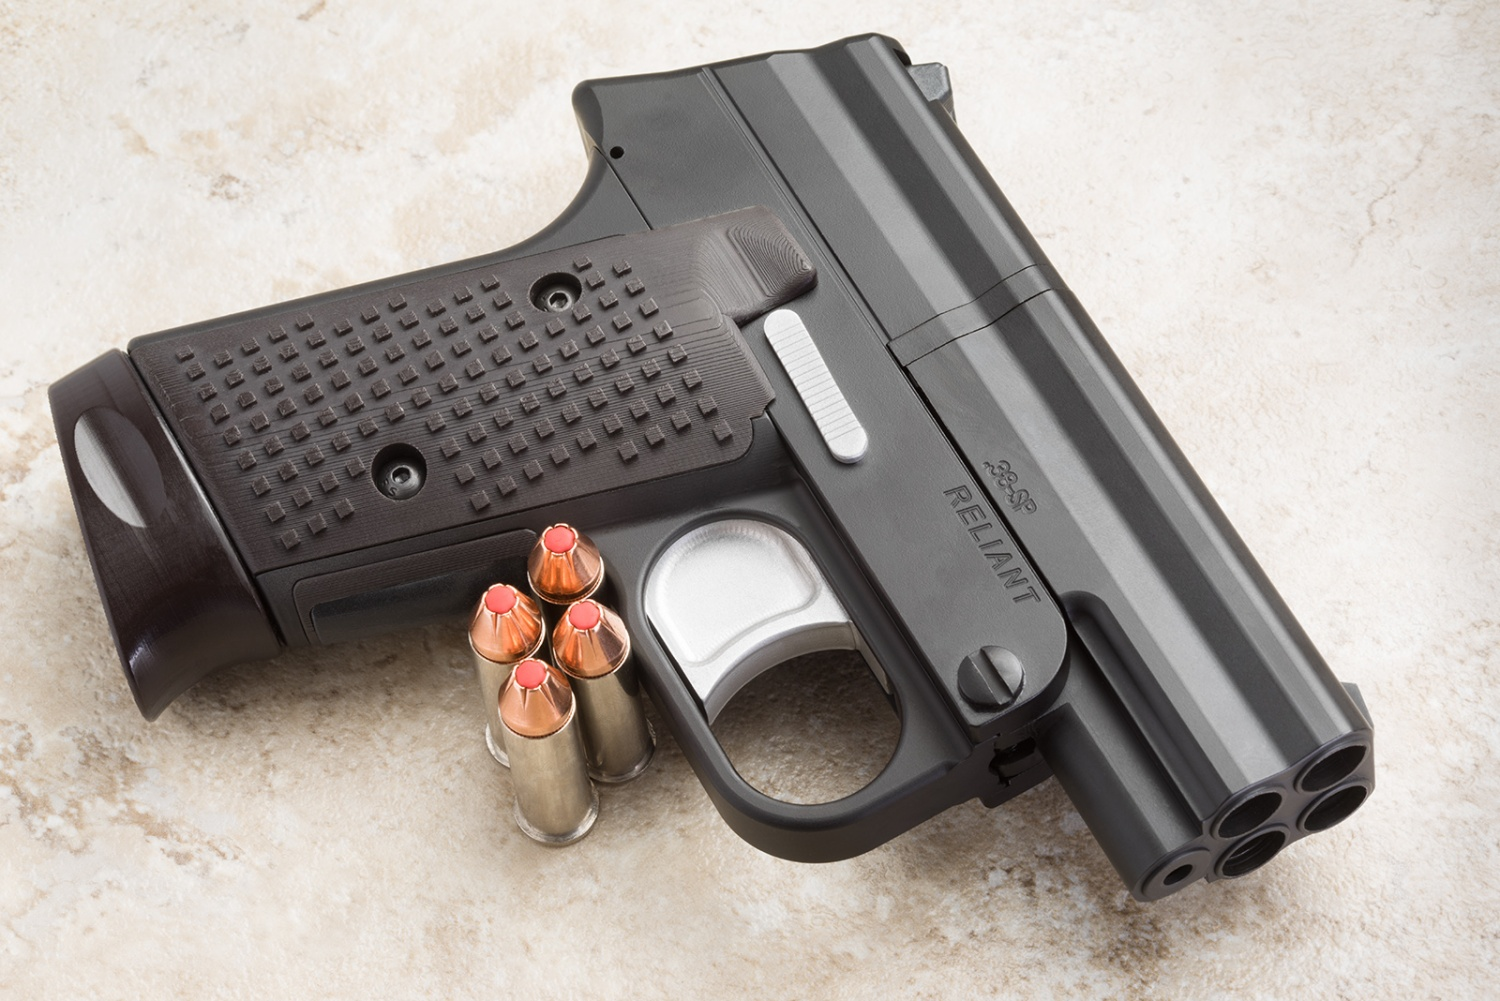 Signal 9 Defense Reliant Pistol At The Nra 2015 National